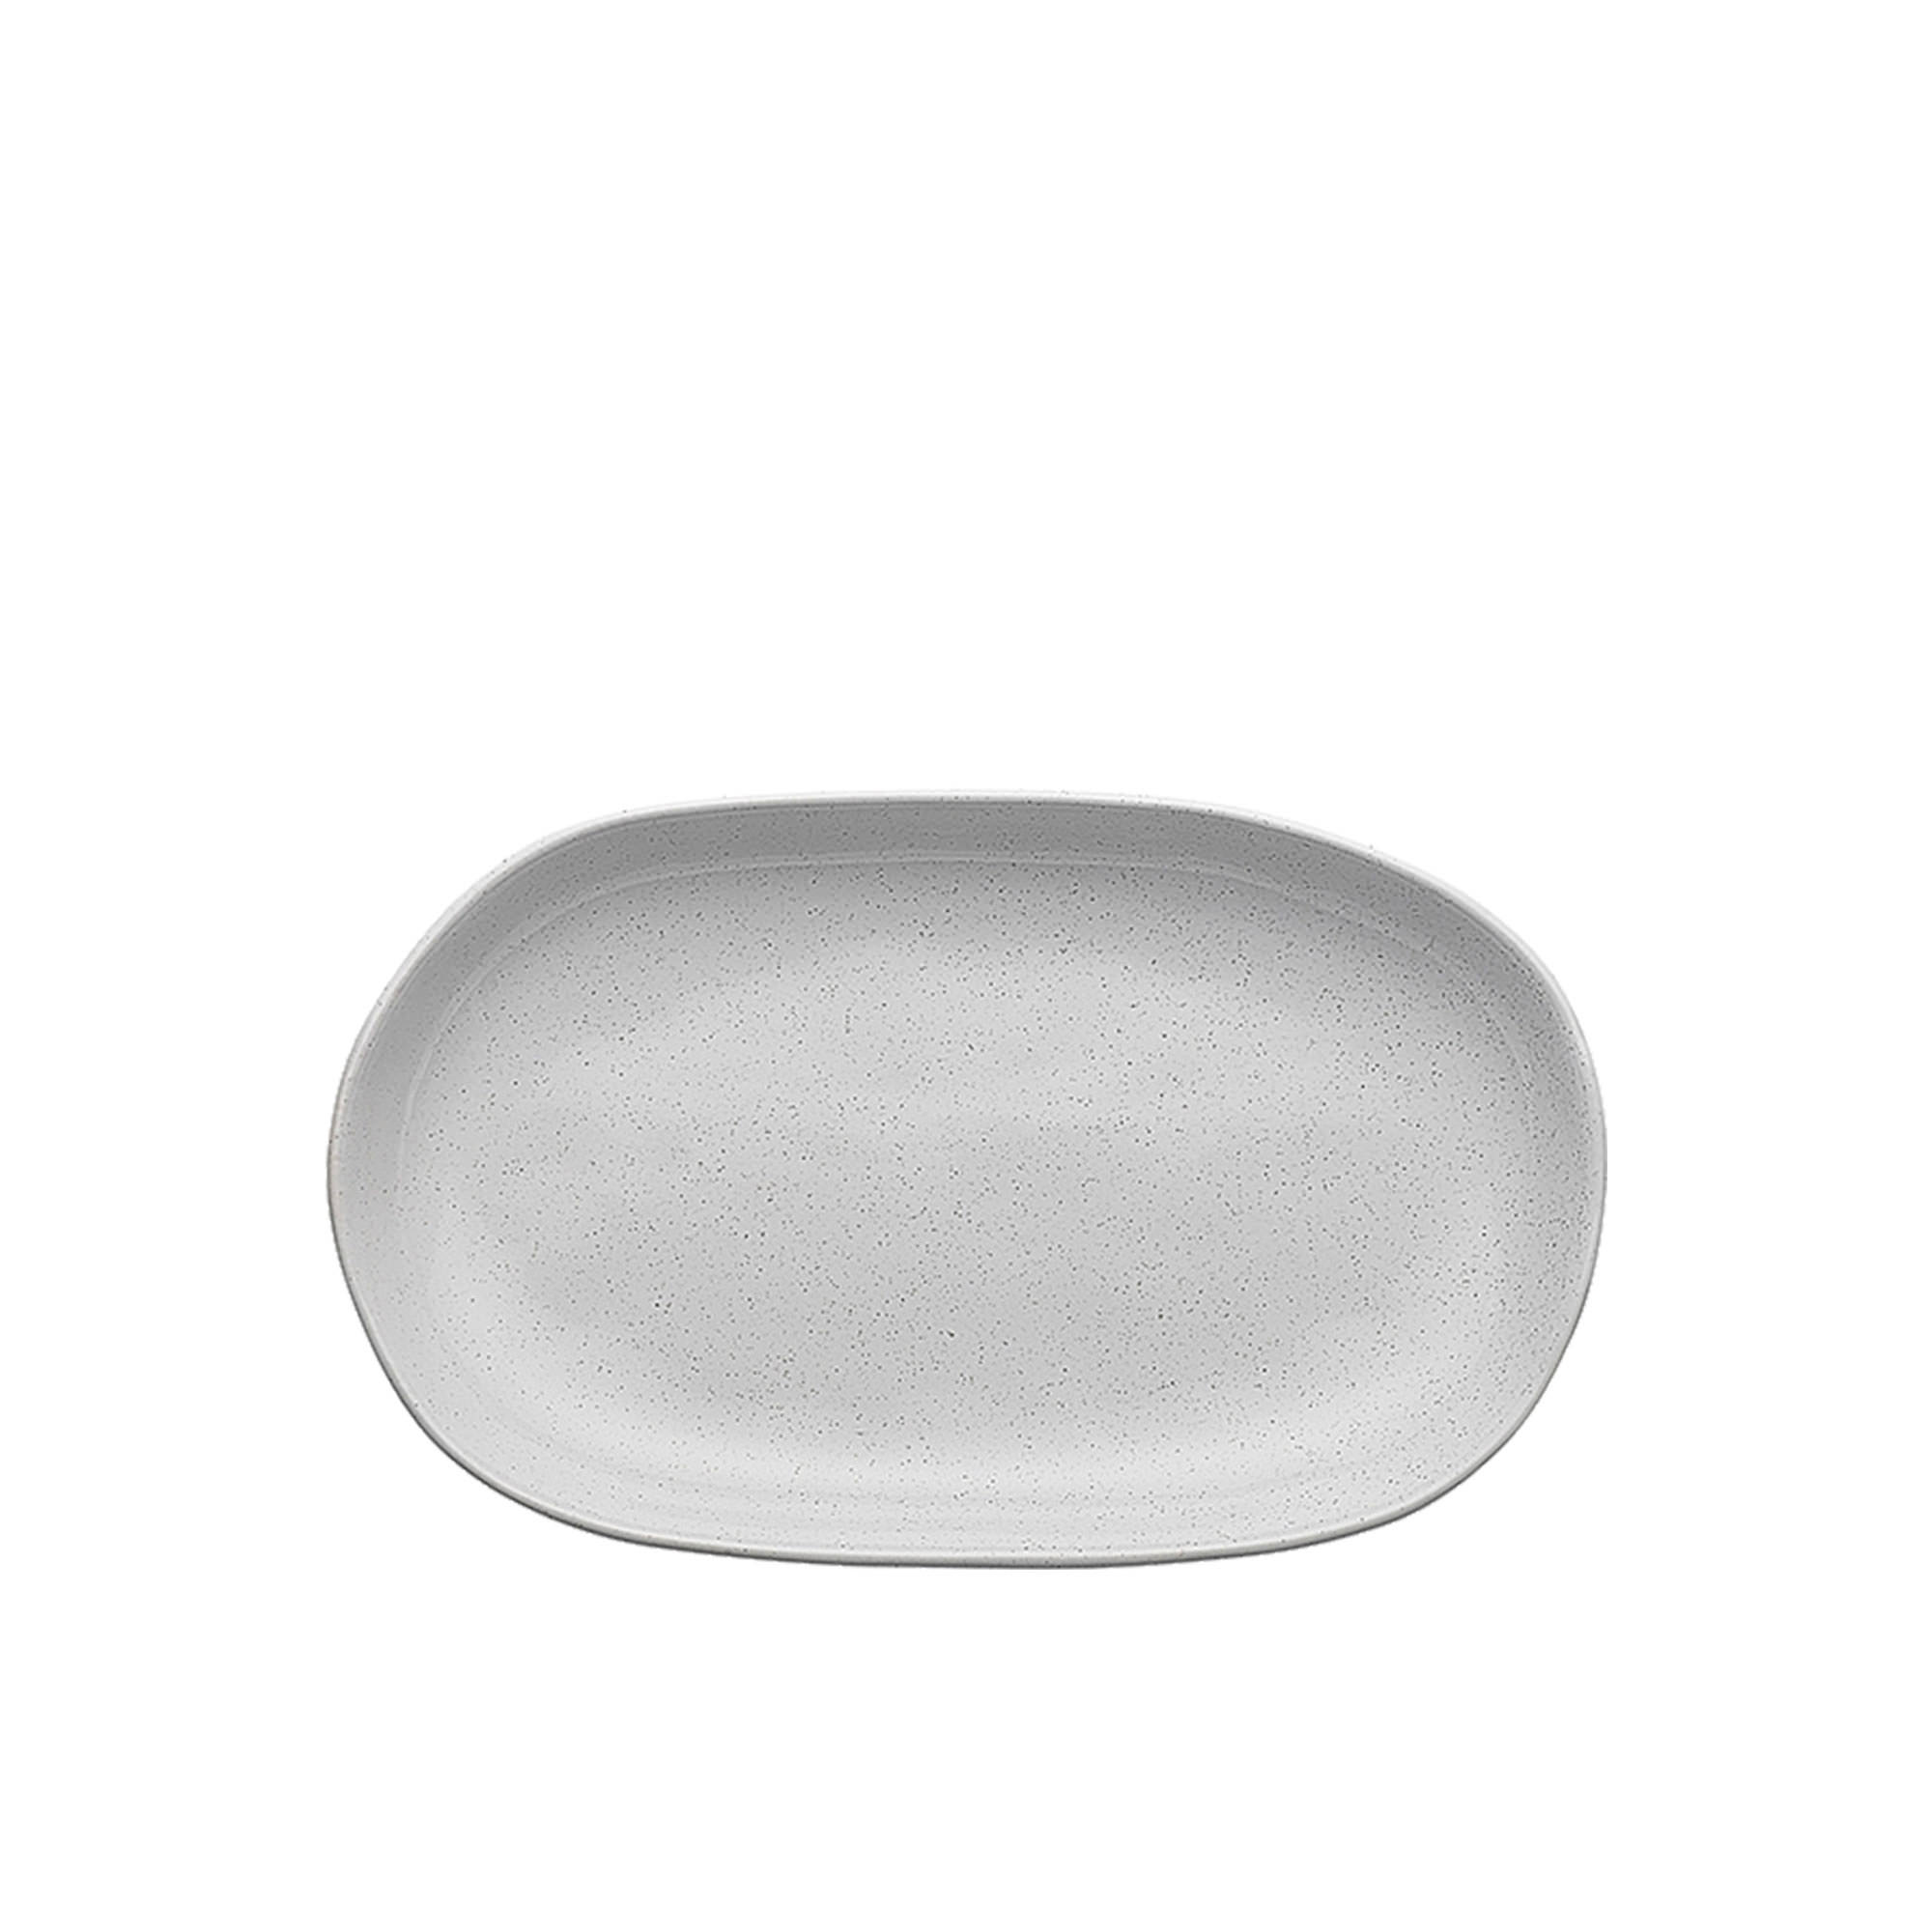 Ecology Speckle Small Shallow Bowl 22x13.5x3cm Milk